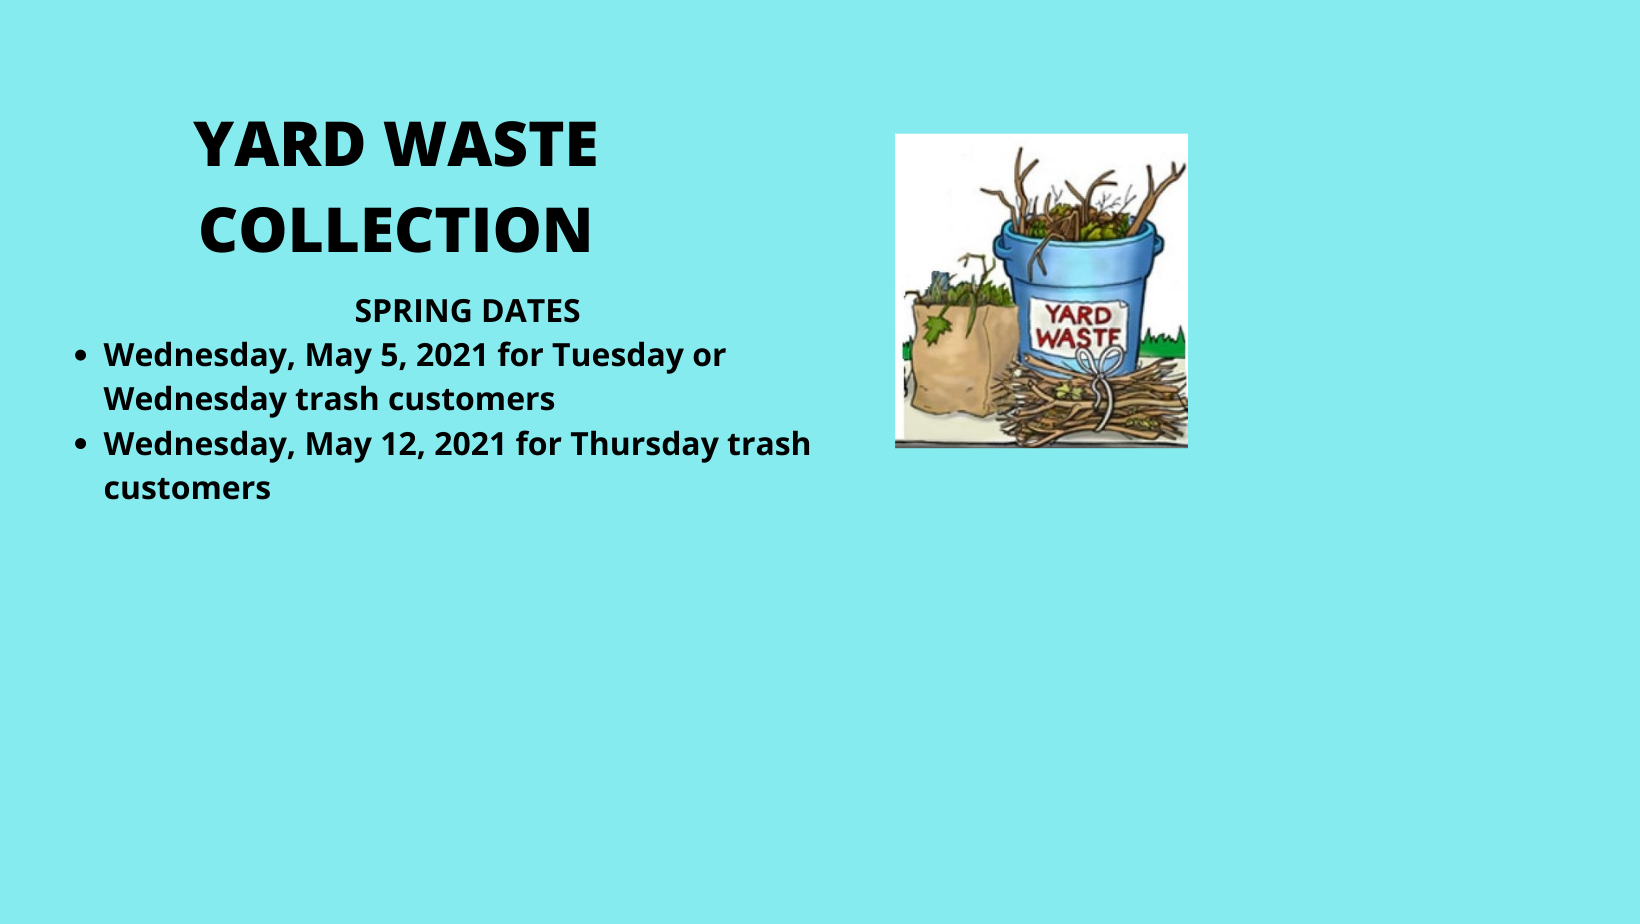 Town of Berlin Yard Waste Collection